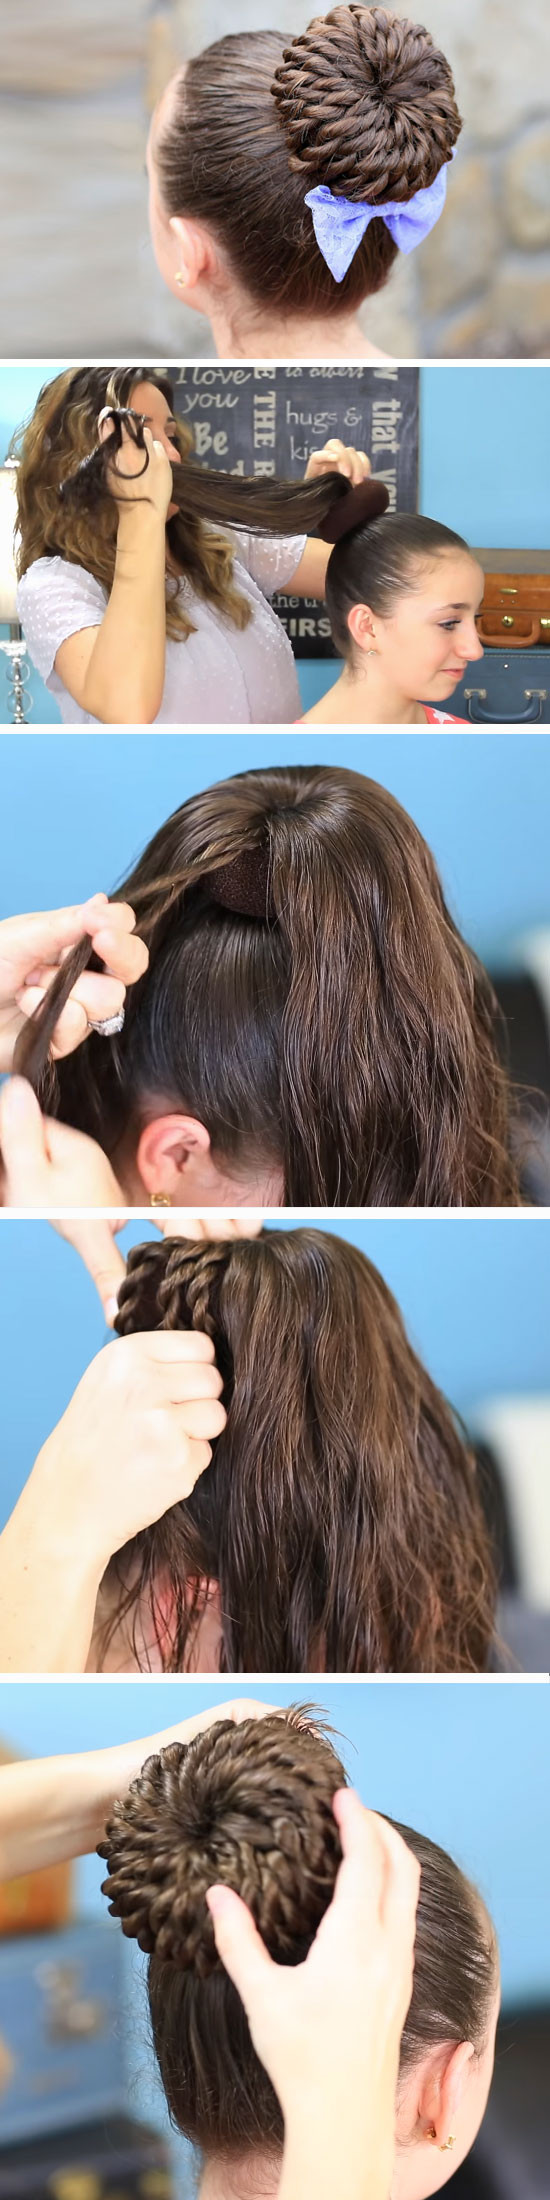 Best ideas about Diy Prom Hairstyles . Save or Pin 15 Easy DIY Prom Hairstyles for Medium Hair Now.